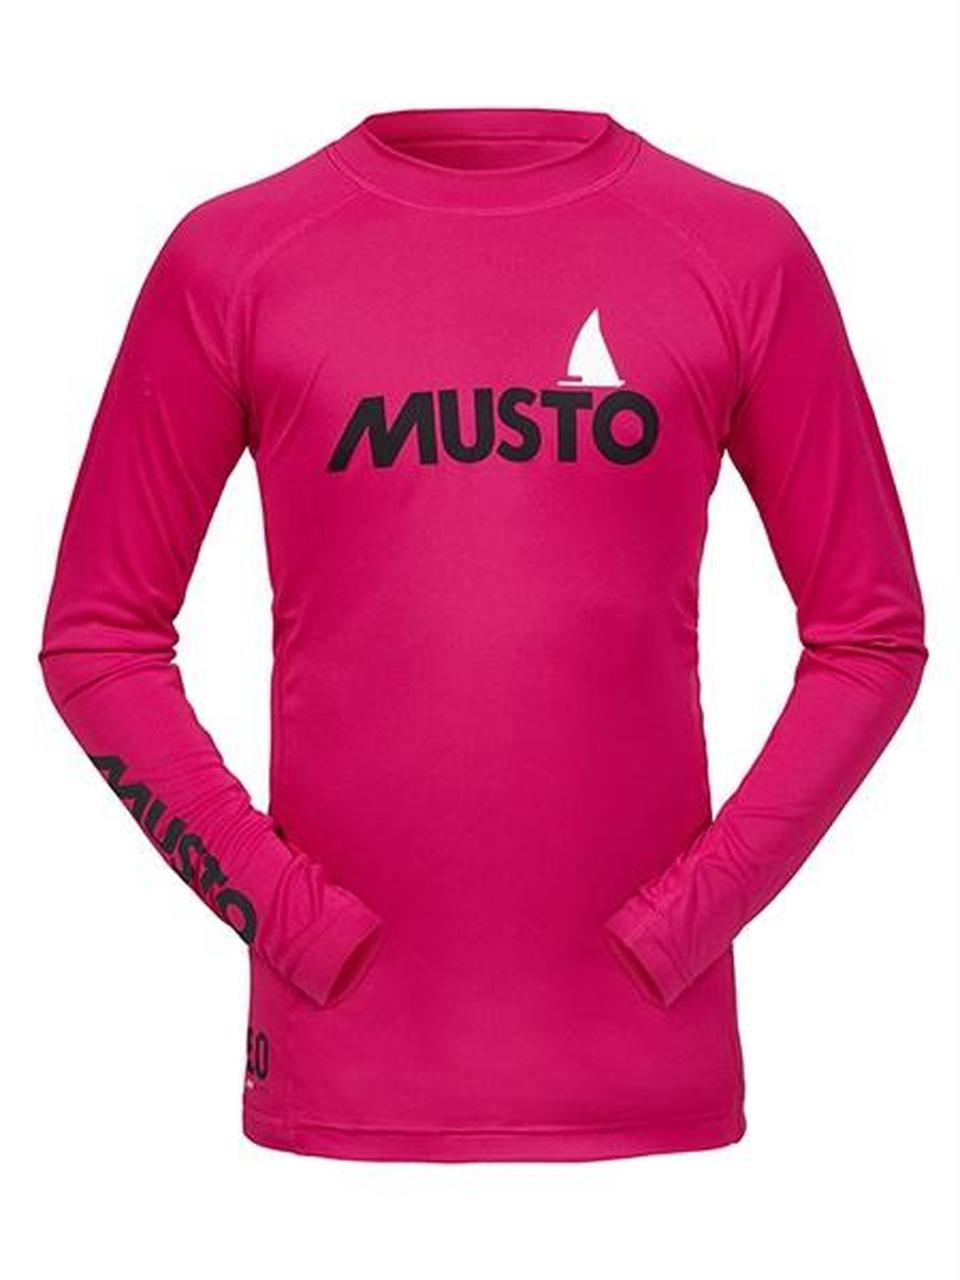 Musto Junior Insignia Rash Guard